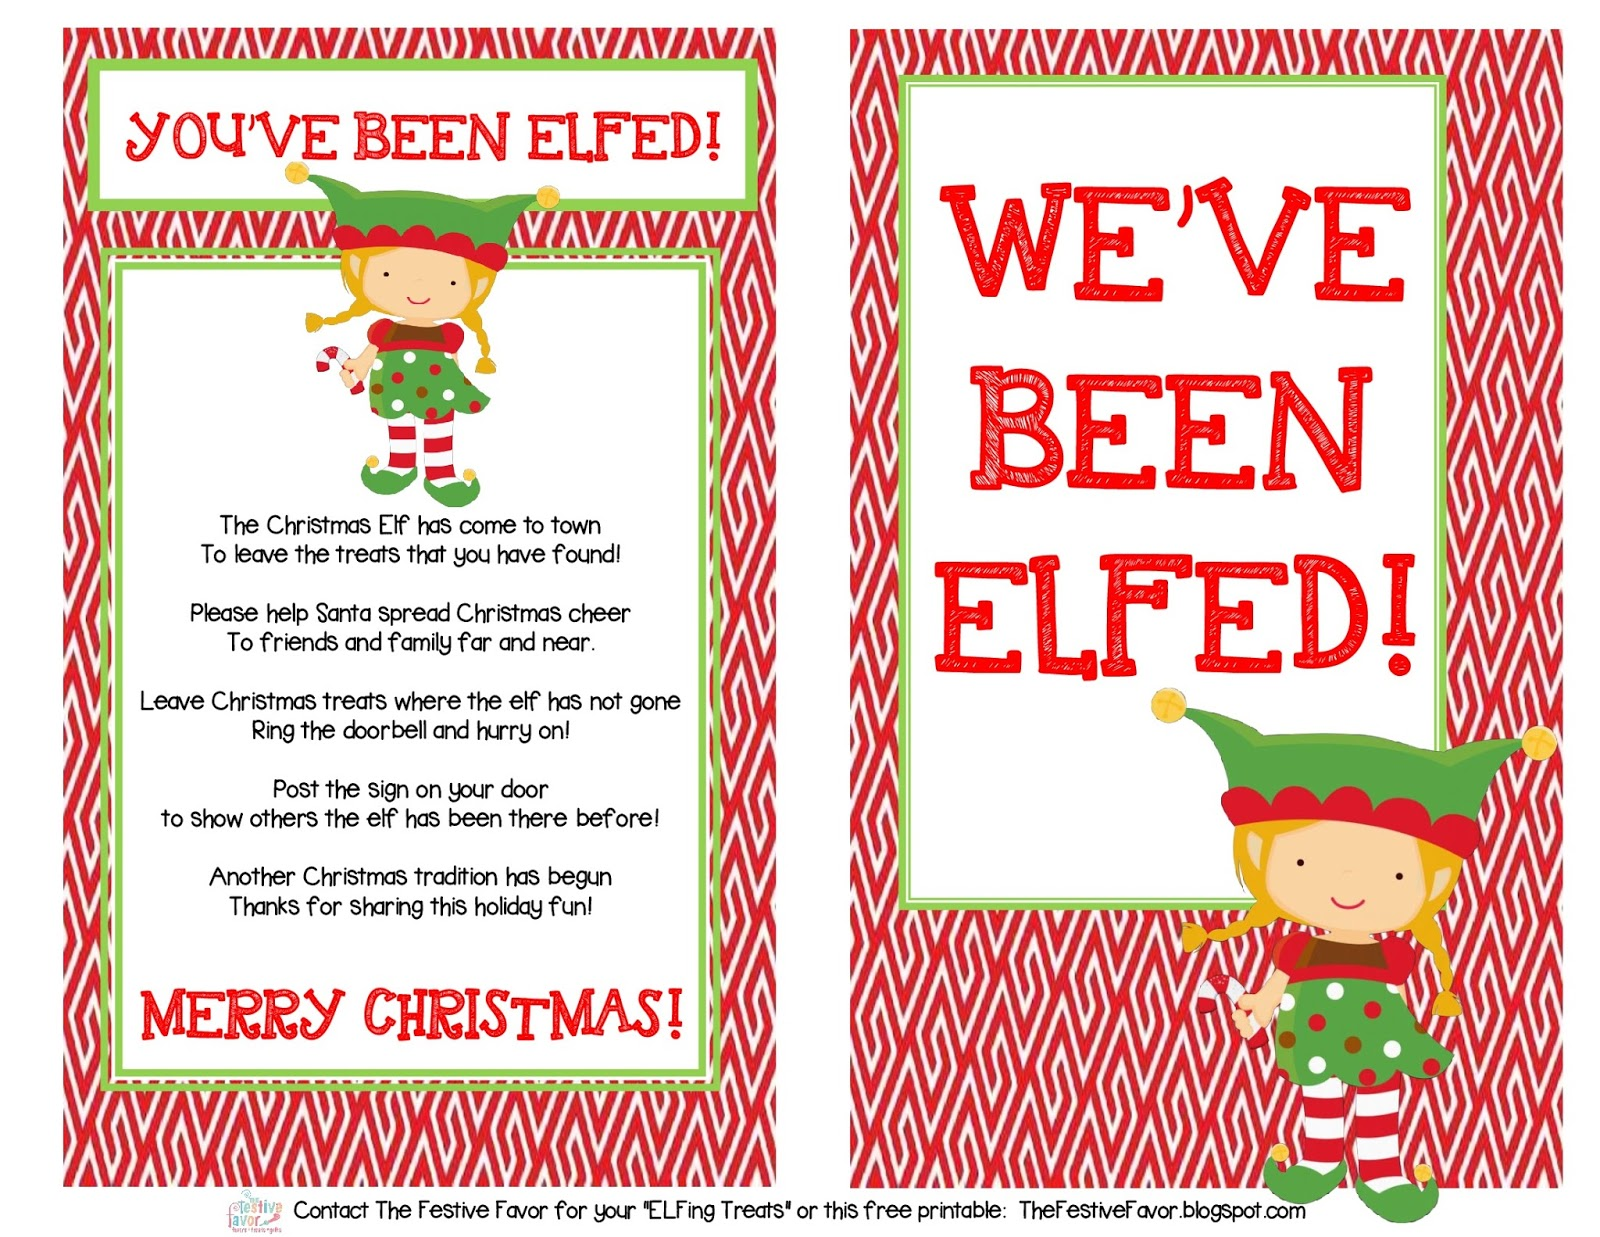 Old Fashioned image with regard to you ve been elfed printable